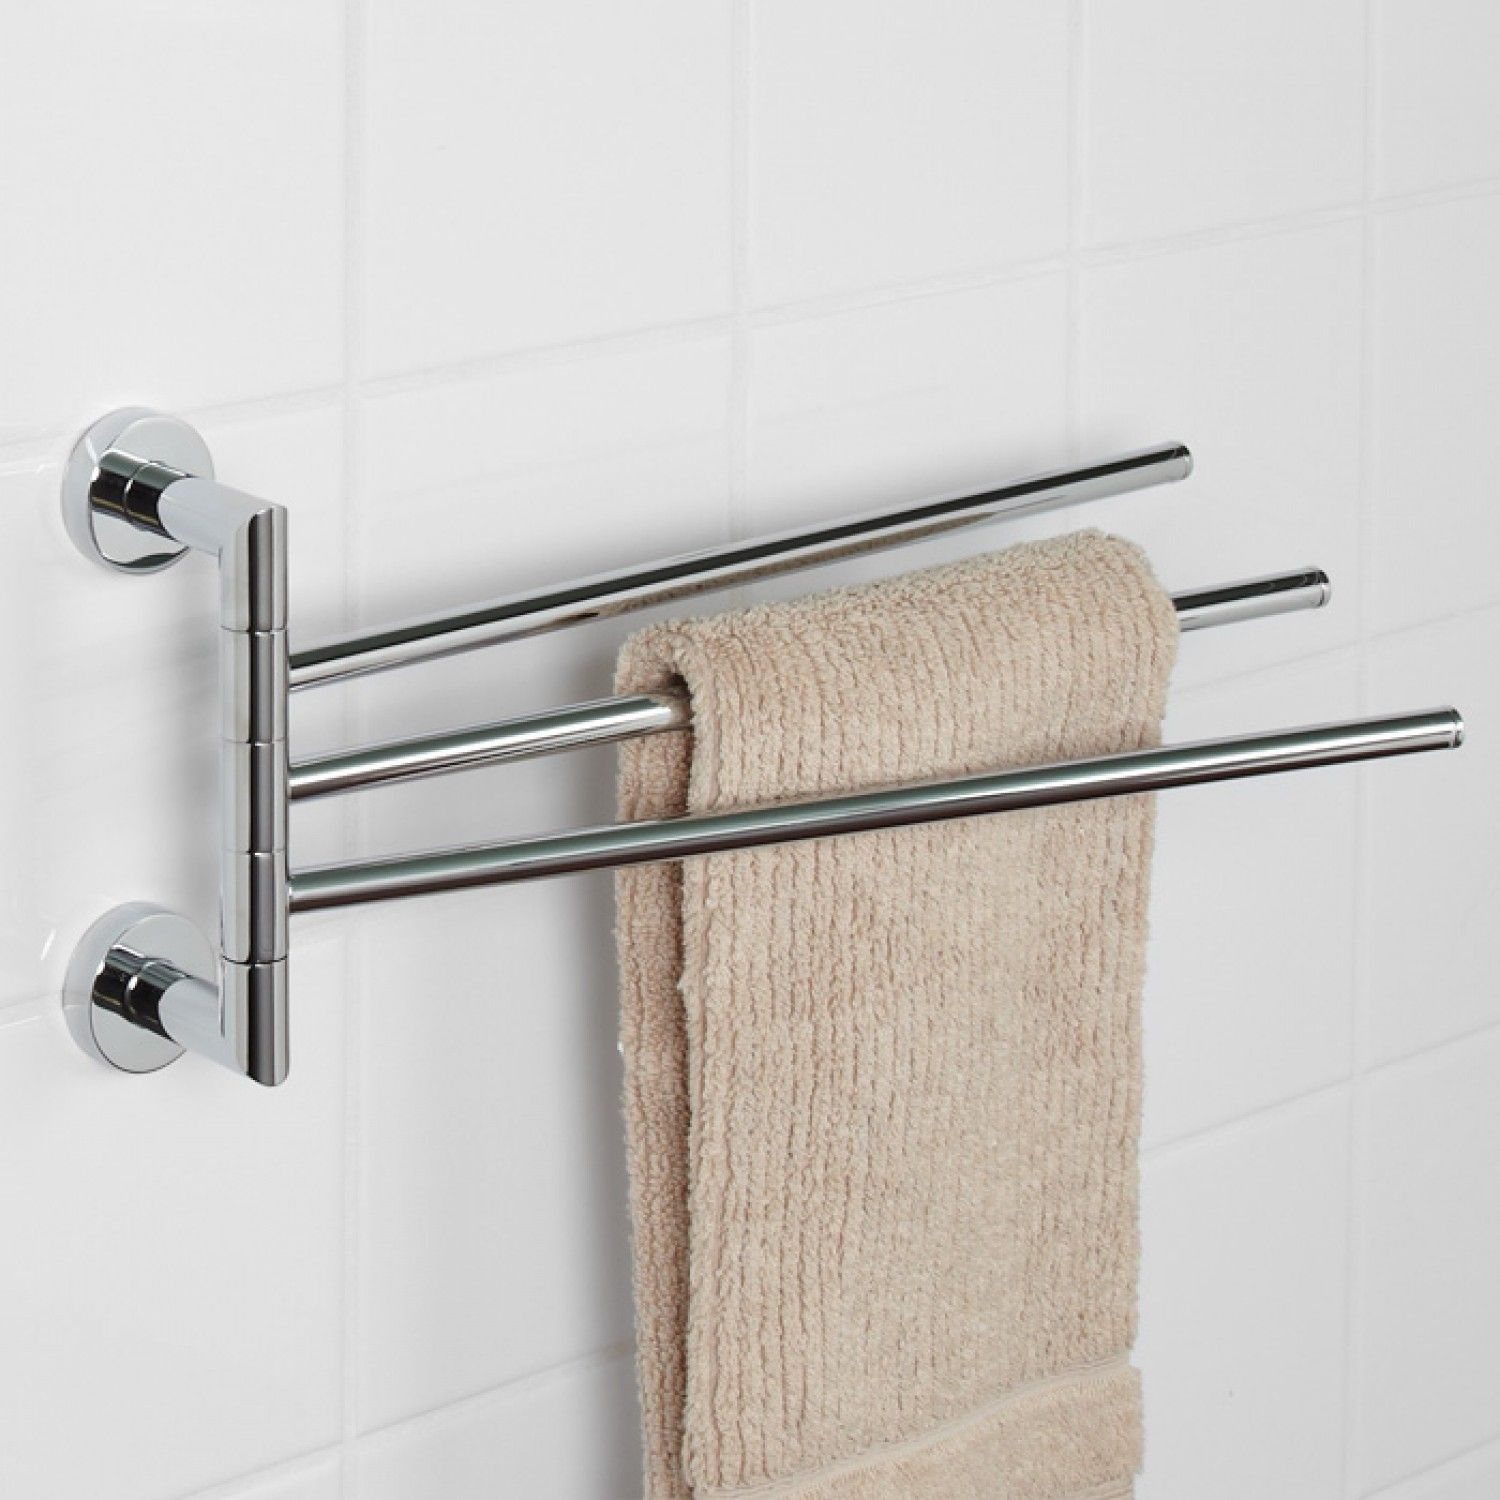 Bristow Triple Swing Arm Towel Bar Towel Holders Bathroom